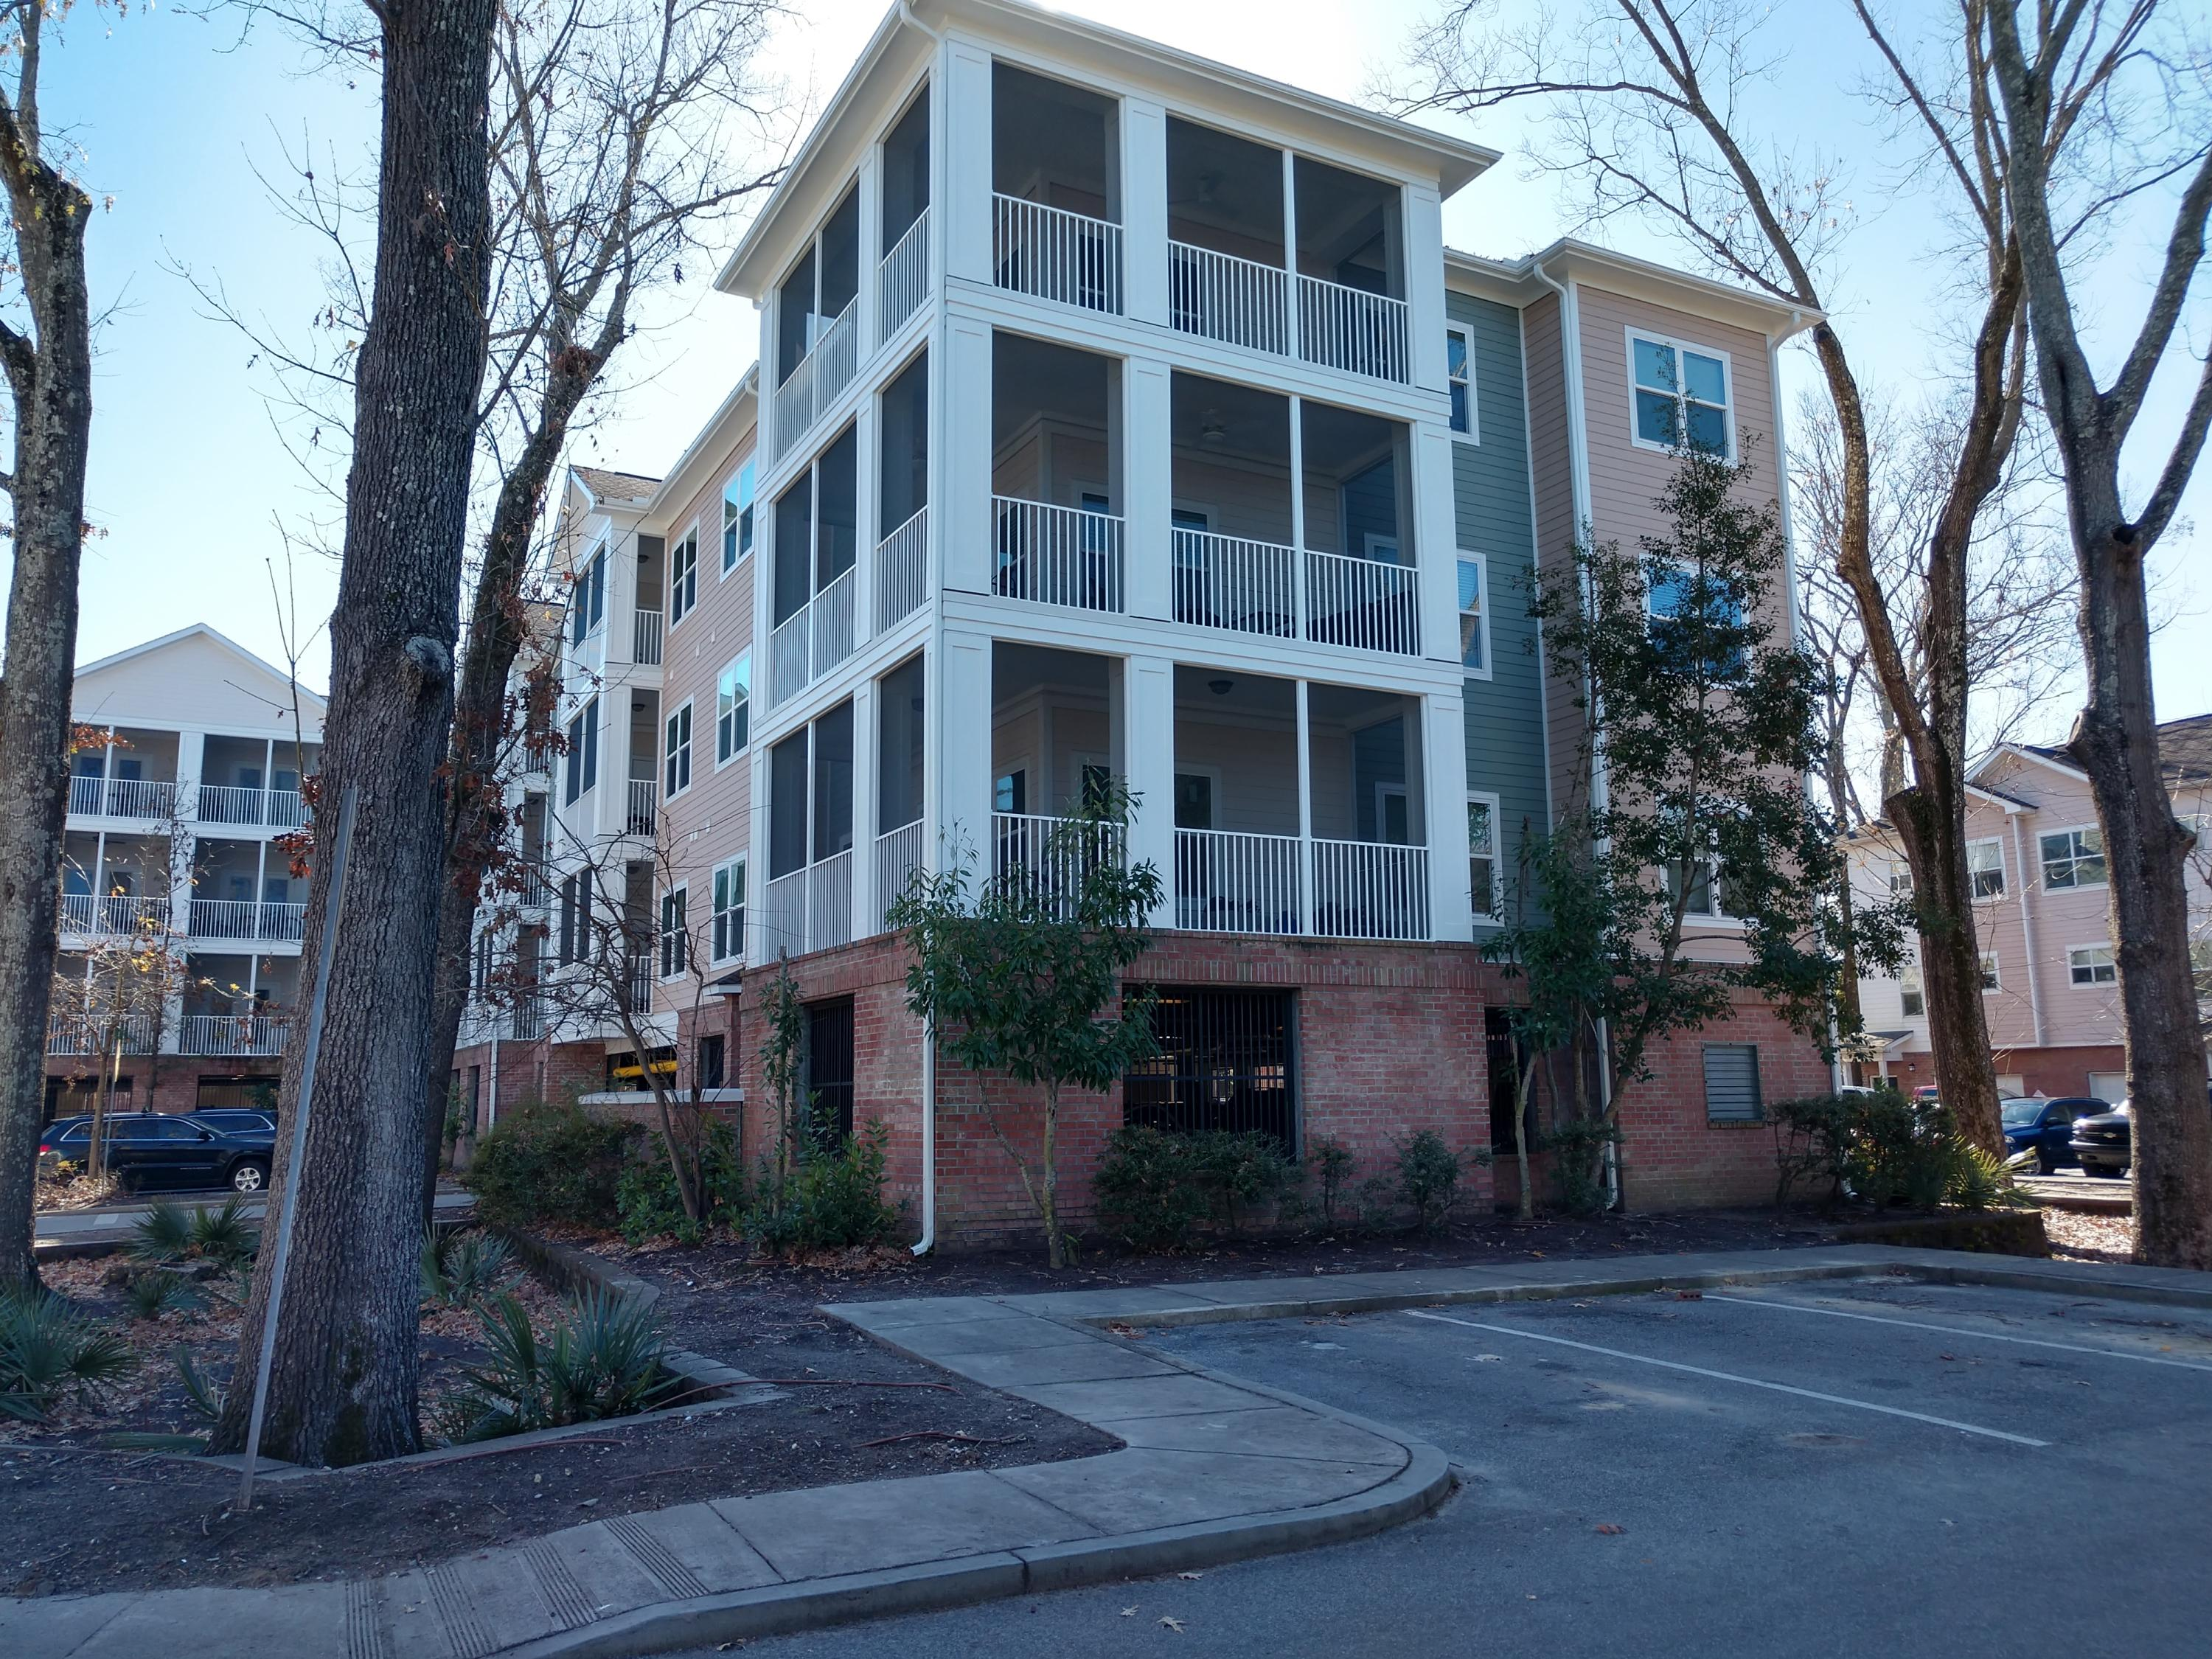 Regatta On James Island Homes For Sale - 1755 Central Park, Charleston, SC - 0